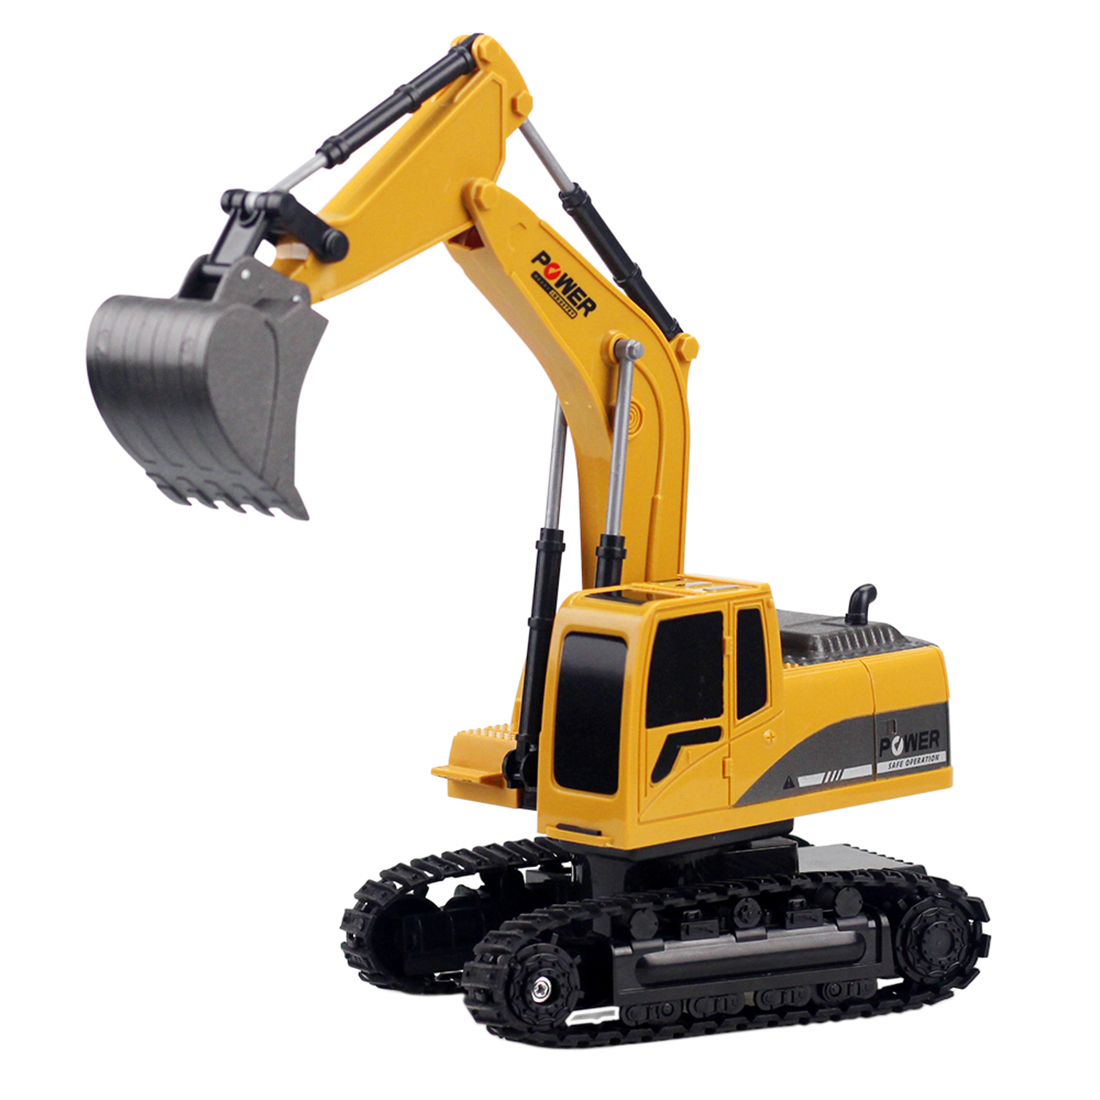 Hot Sale 1:24 6CH RC Engineering Van Excavator Model Navvy Beach Sand Toy For Children Kids Water Fun Sports - Alloy Version